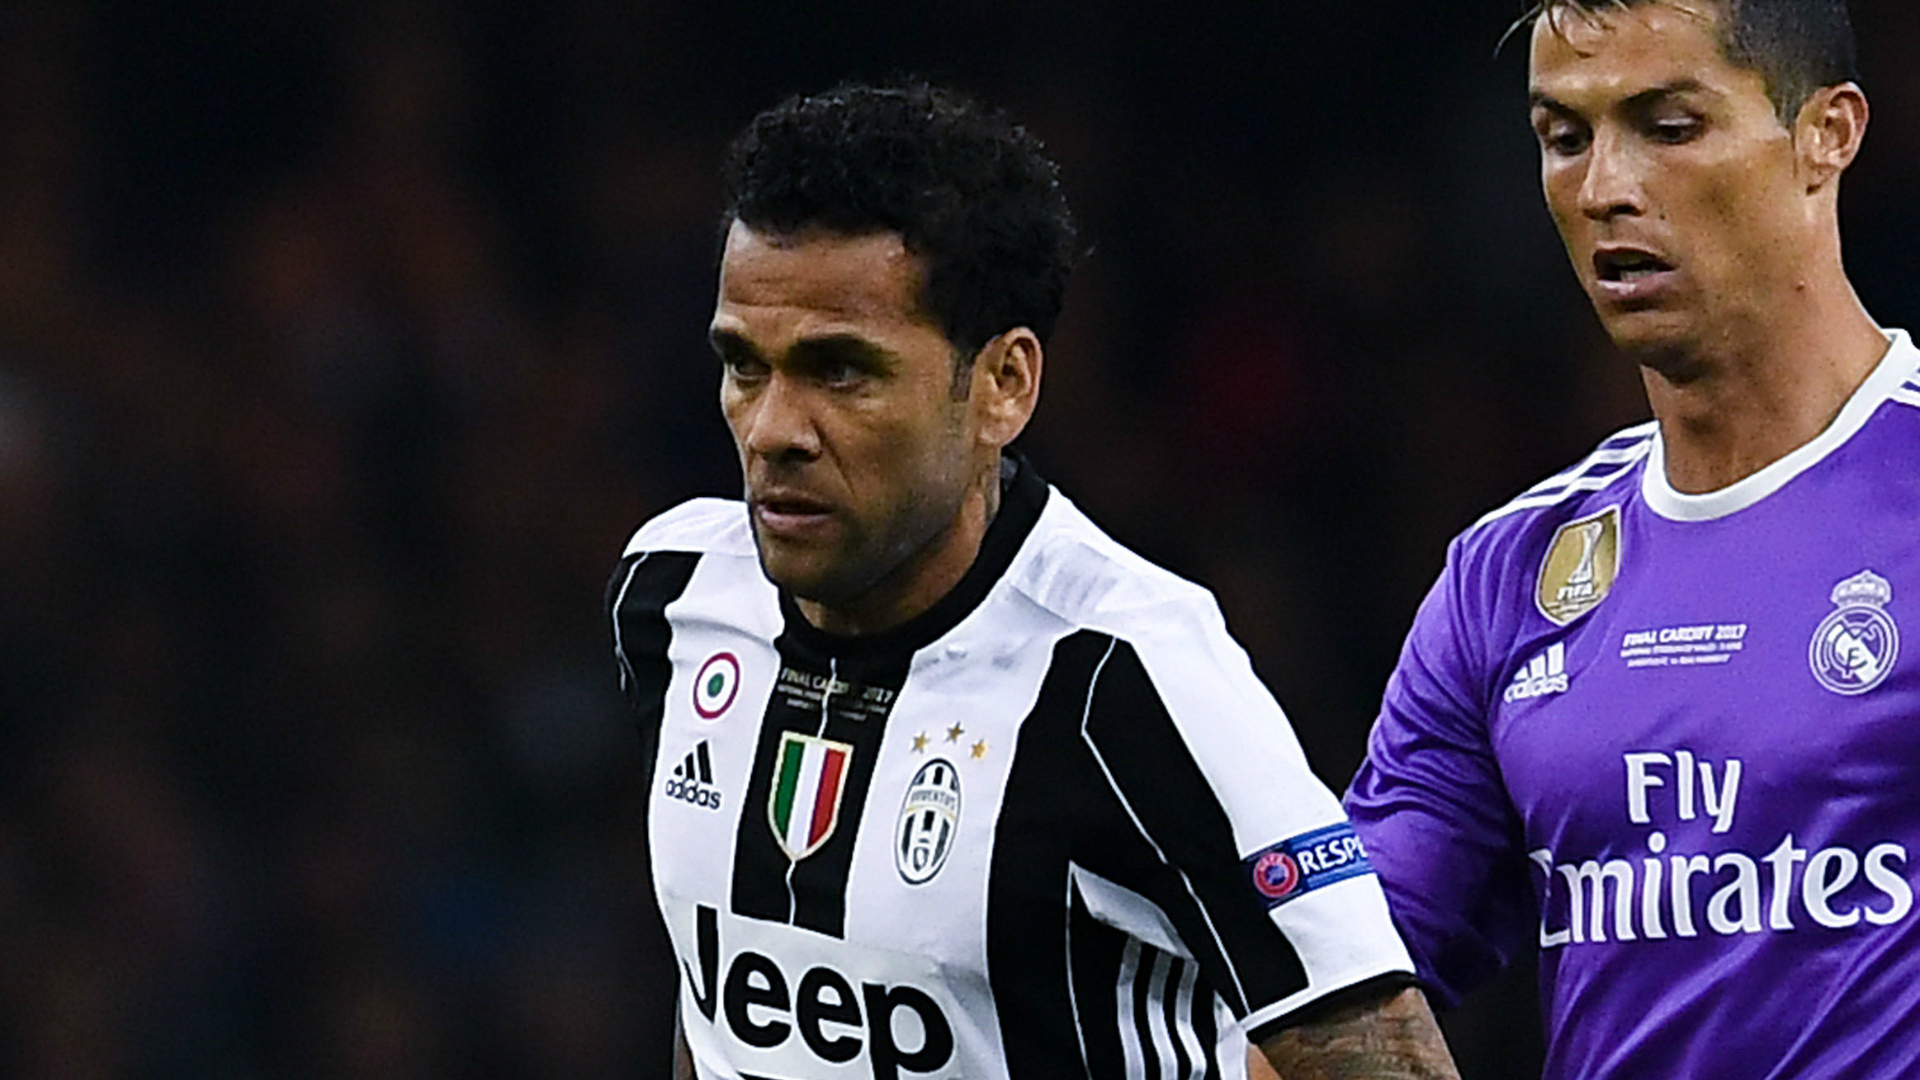 Dani Alves Juventus Real Madrid Champions League final 03062017